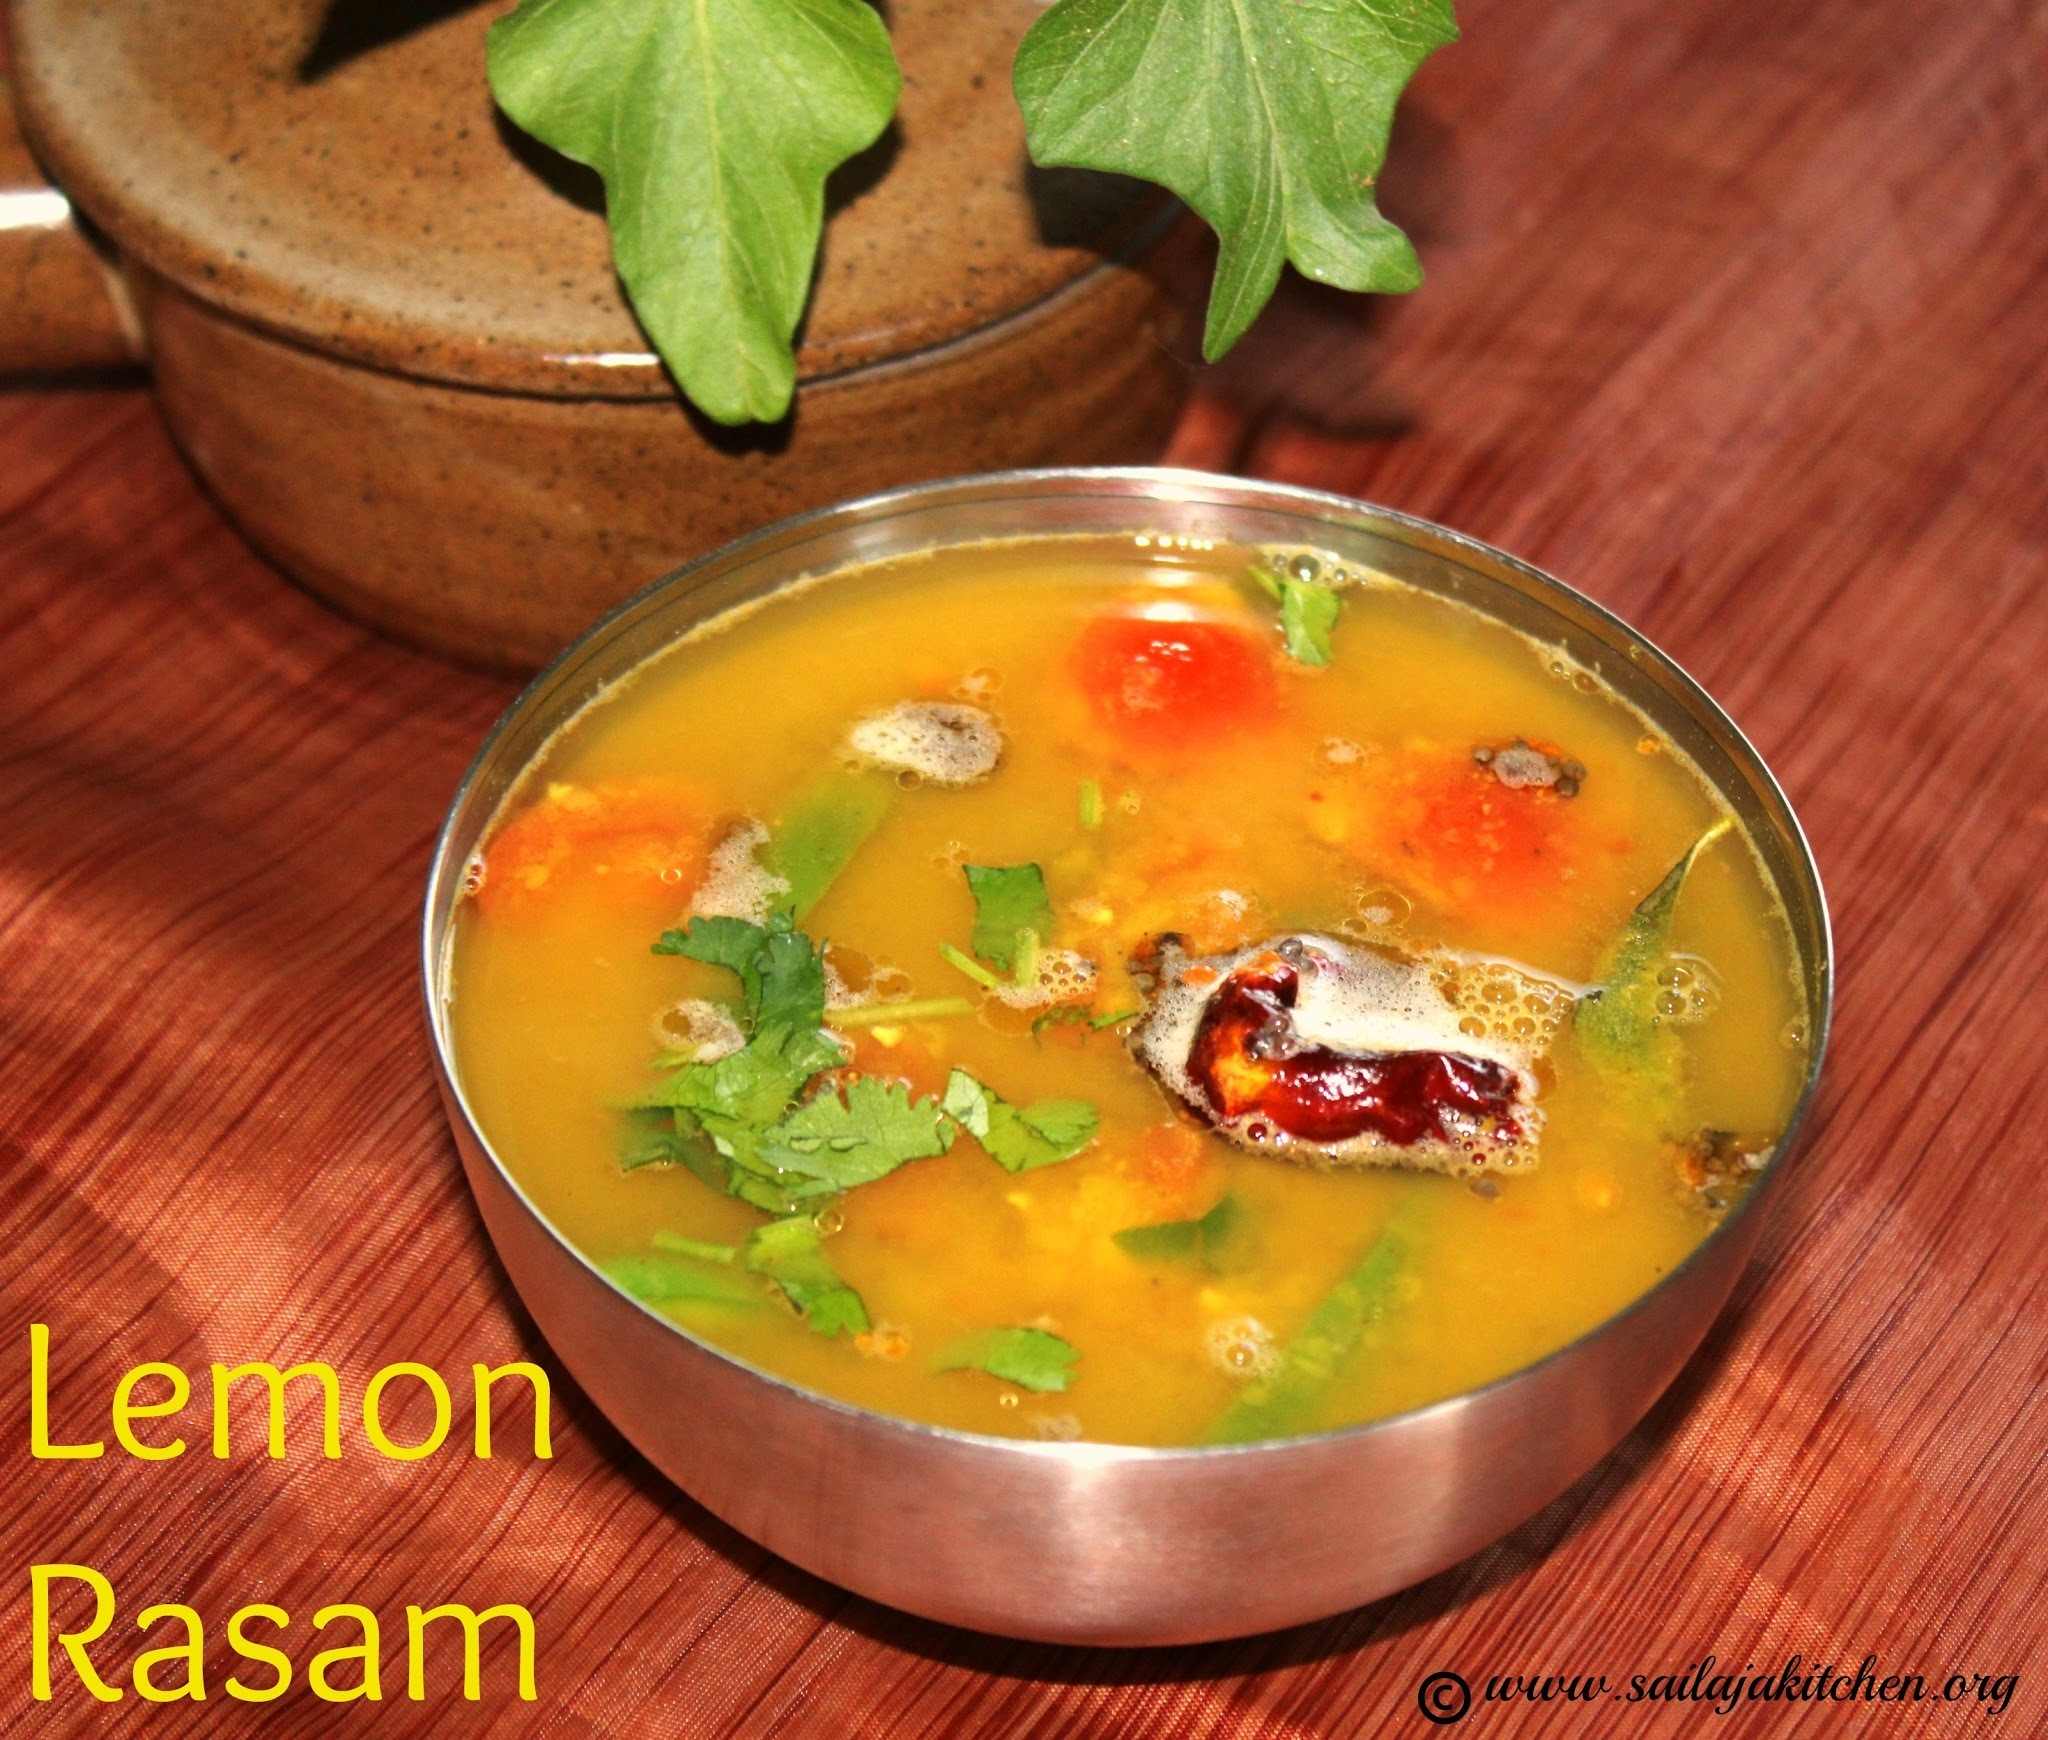 Lemon Rasam Recipe / Elumichai Rasam Recipe / South Indian Lemon Soup